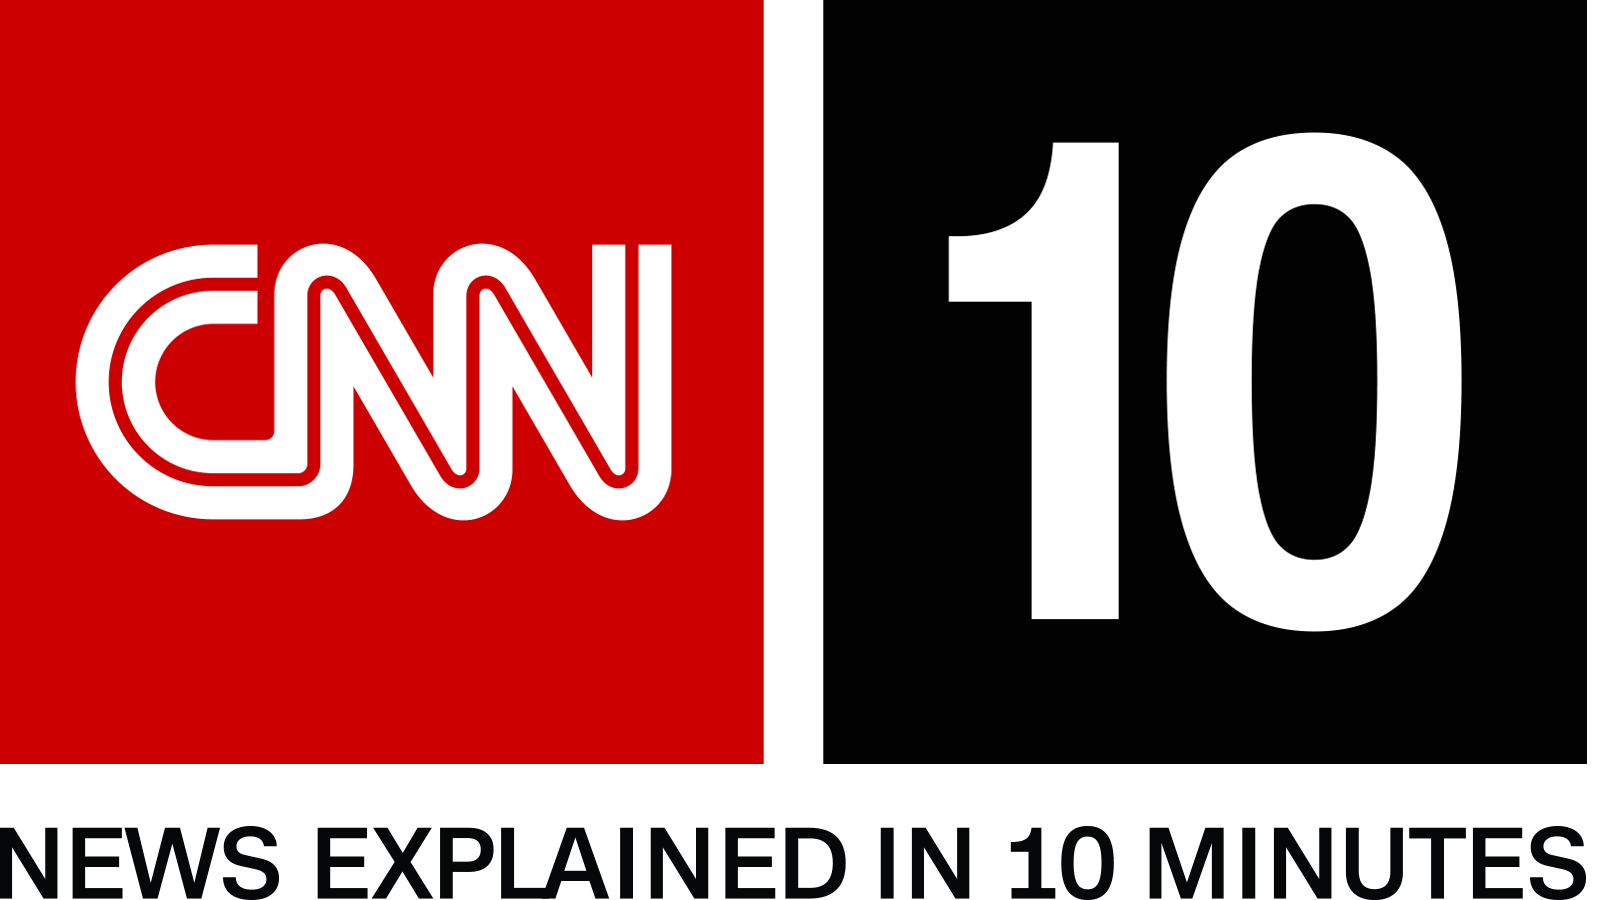 Five Reasons Cnn 10 Videos Are Great Tools For Teaching